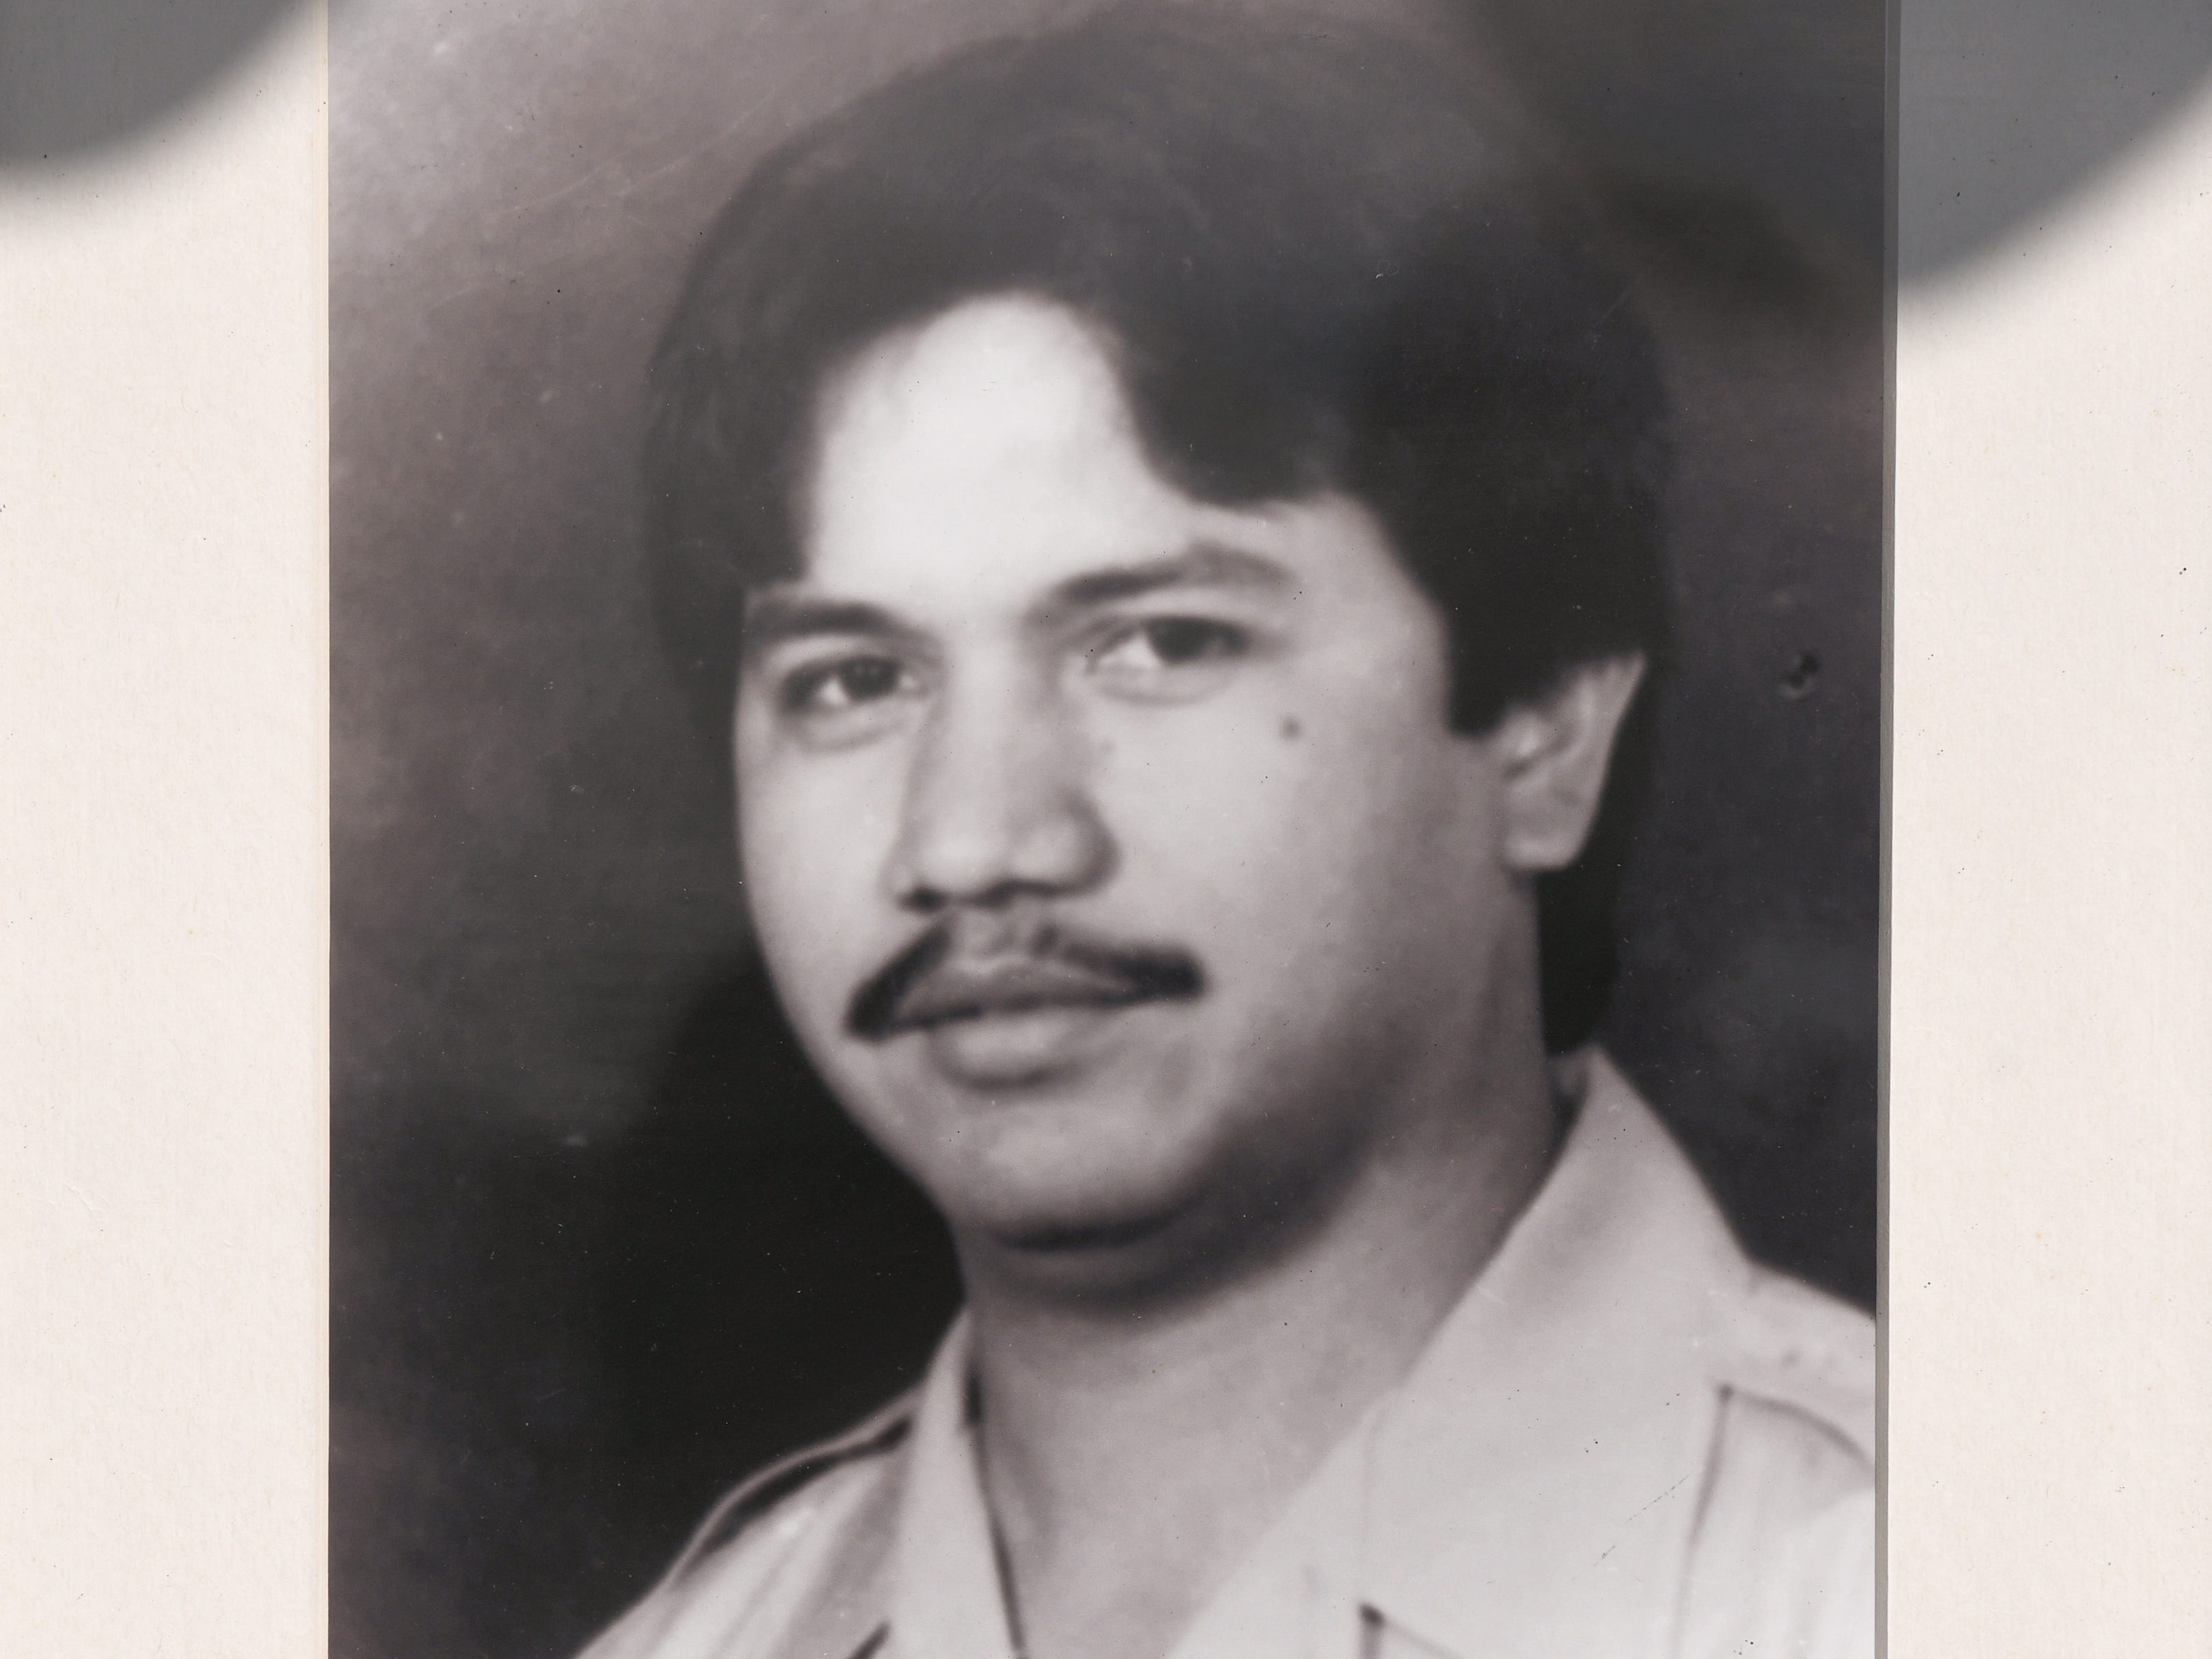 Police Officer Eddie Santos